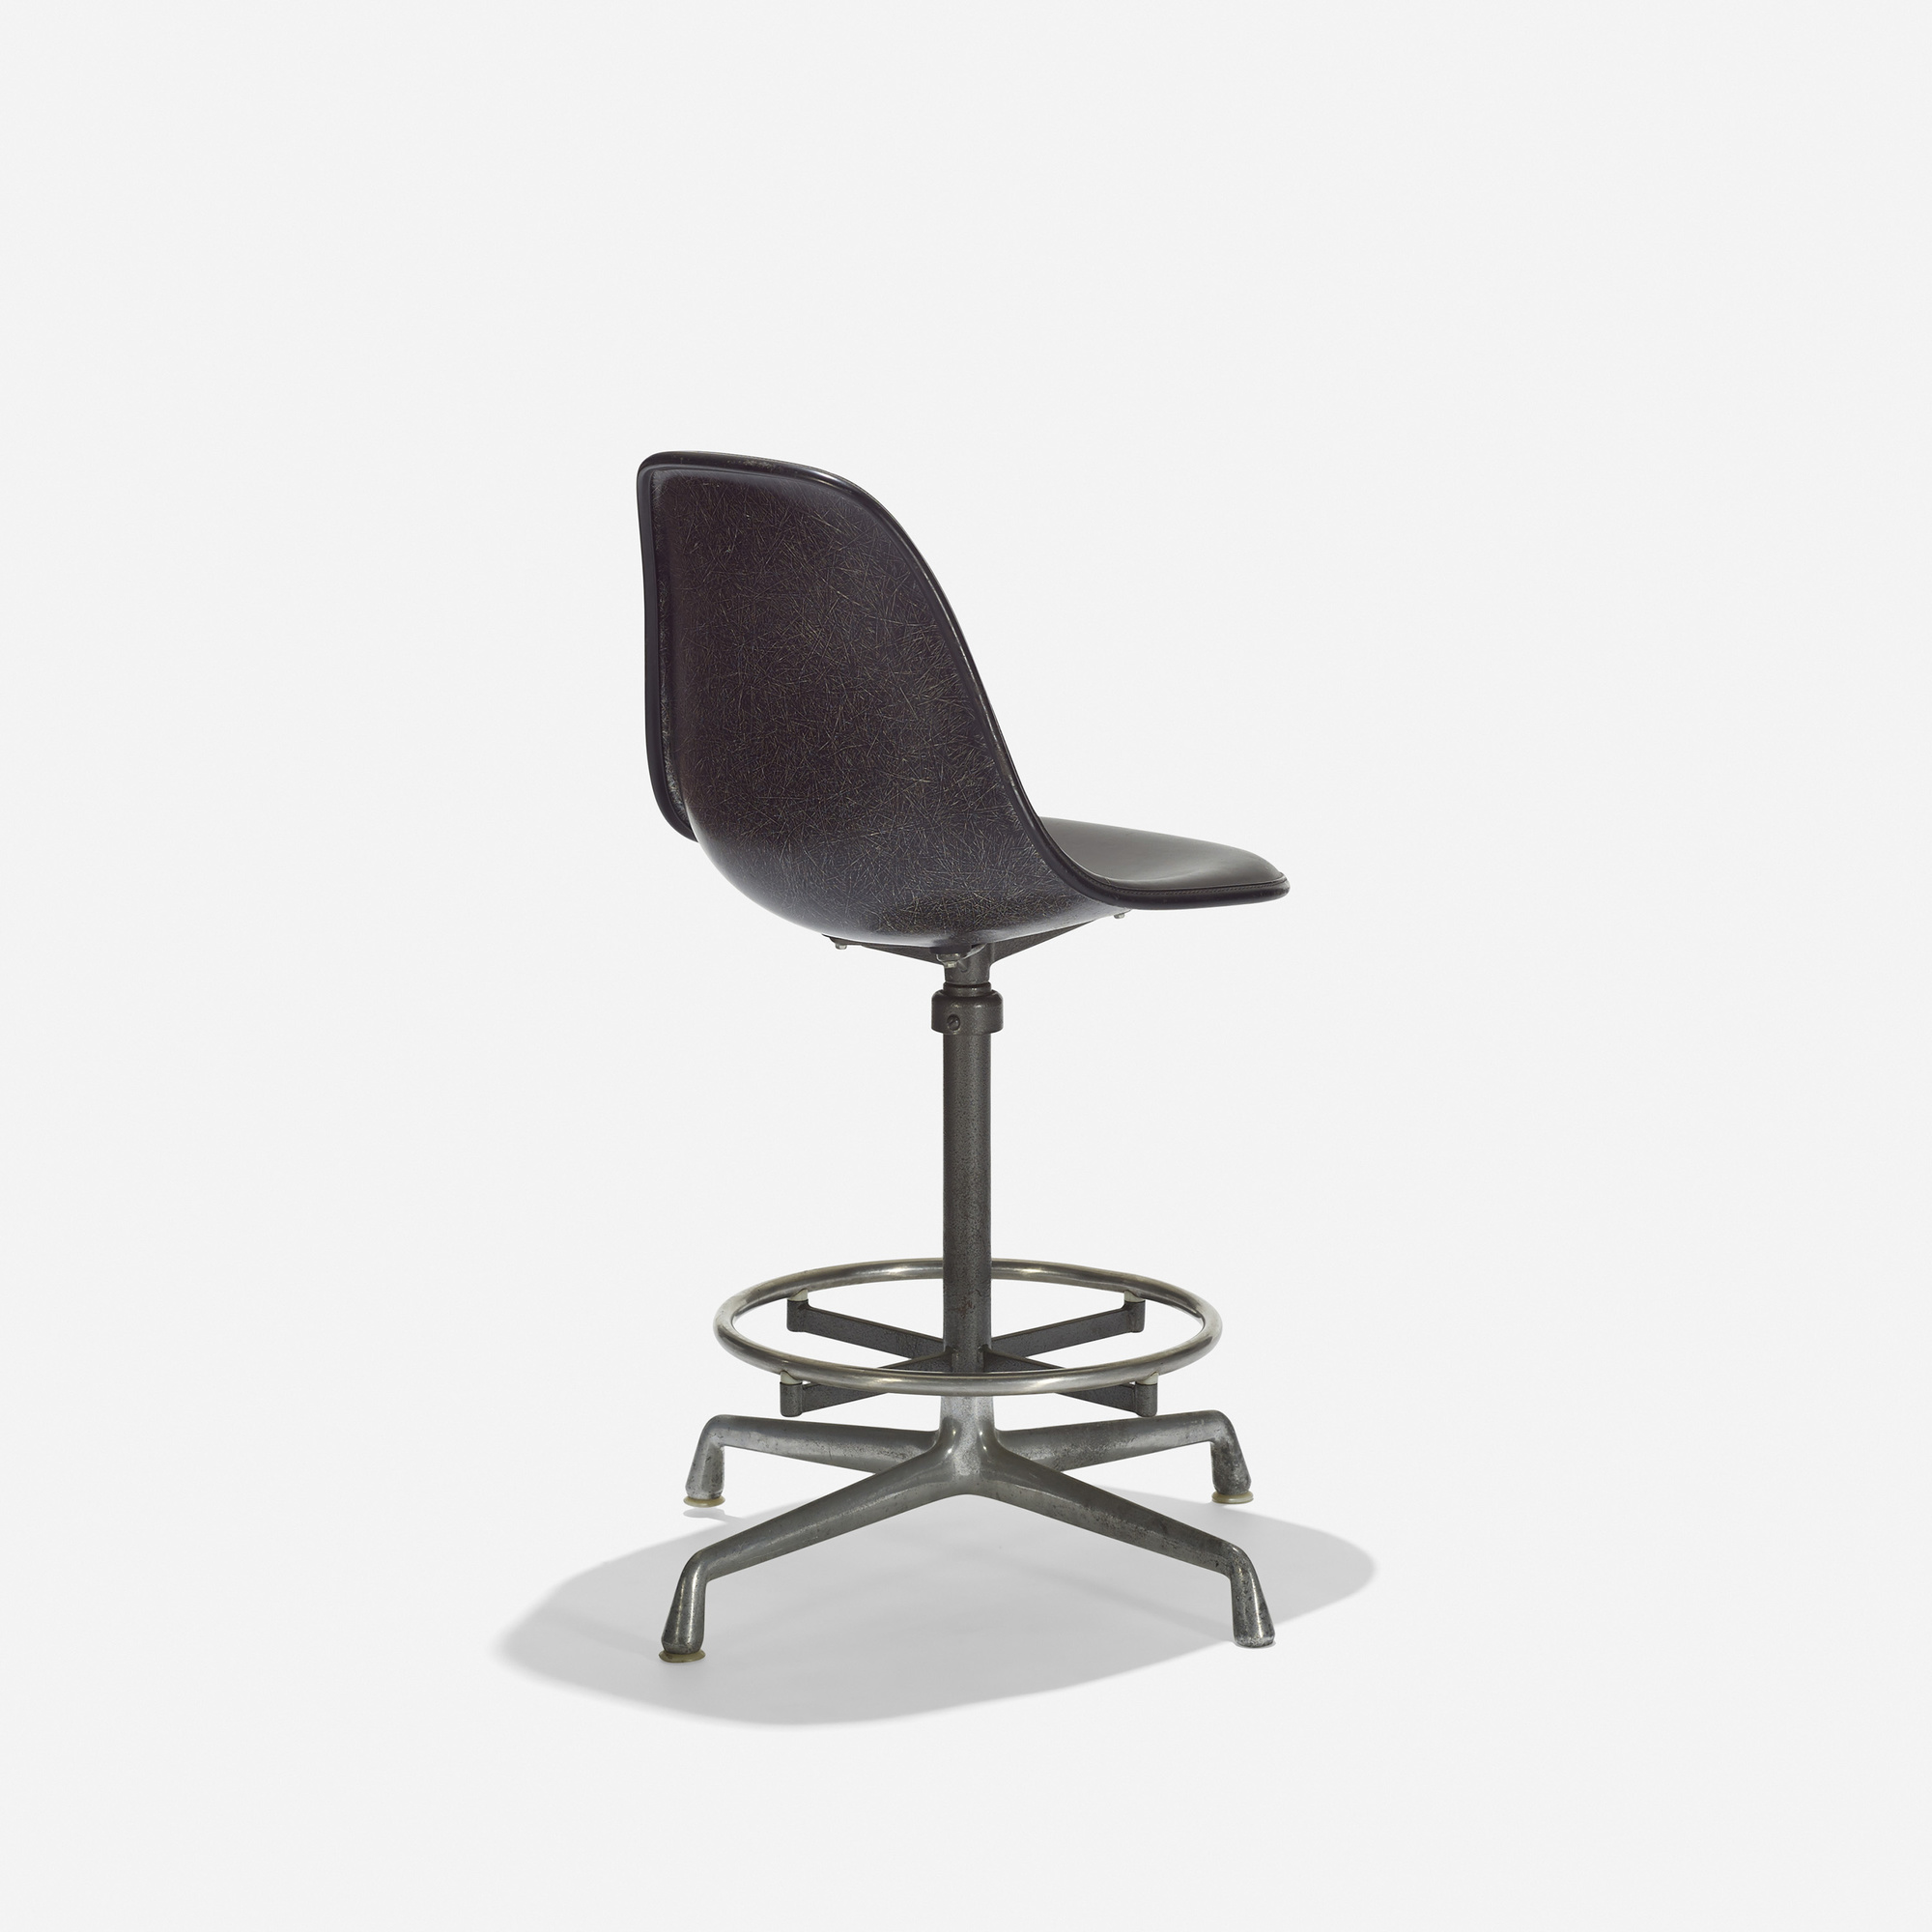 257 Charles and Ray Eames / drafting chair model EC123-06 (1 & 257: CHARLES AND RAY EAMES drafting chair model EC123-06 u003c Eames ...